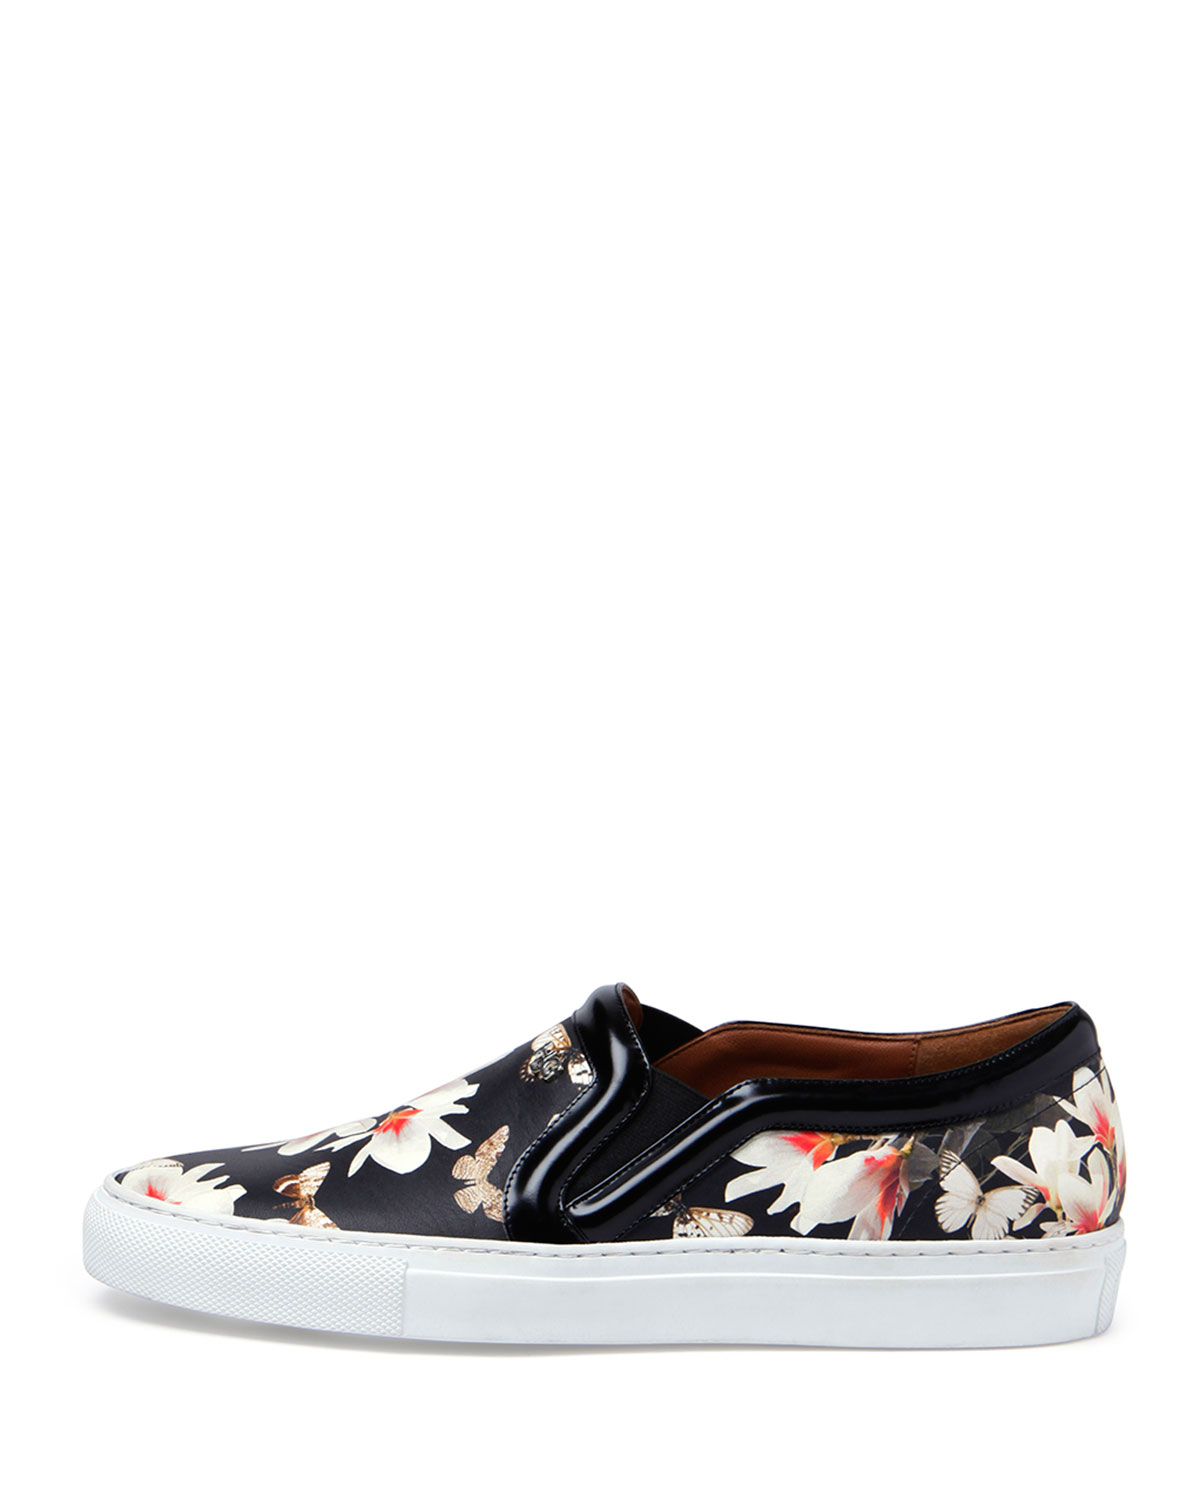 givenchy floral print slip on sneaker in black lyst